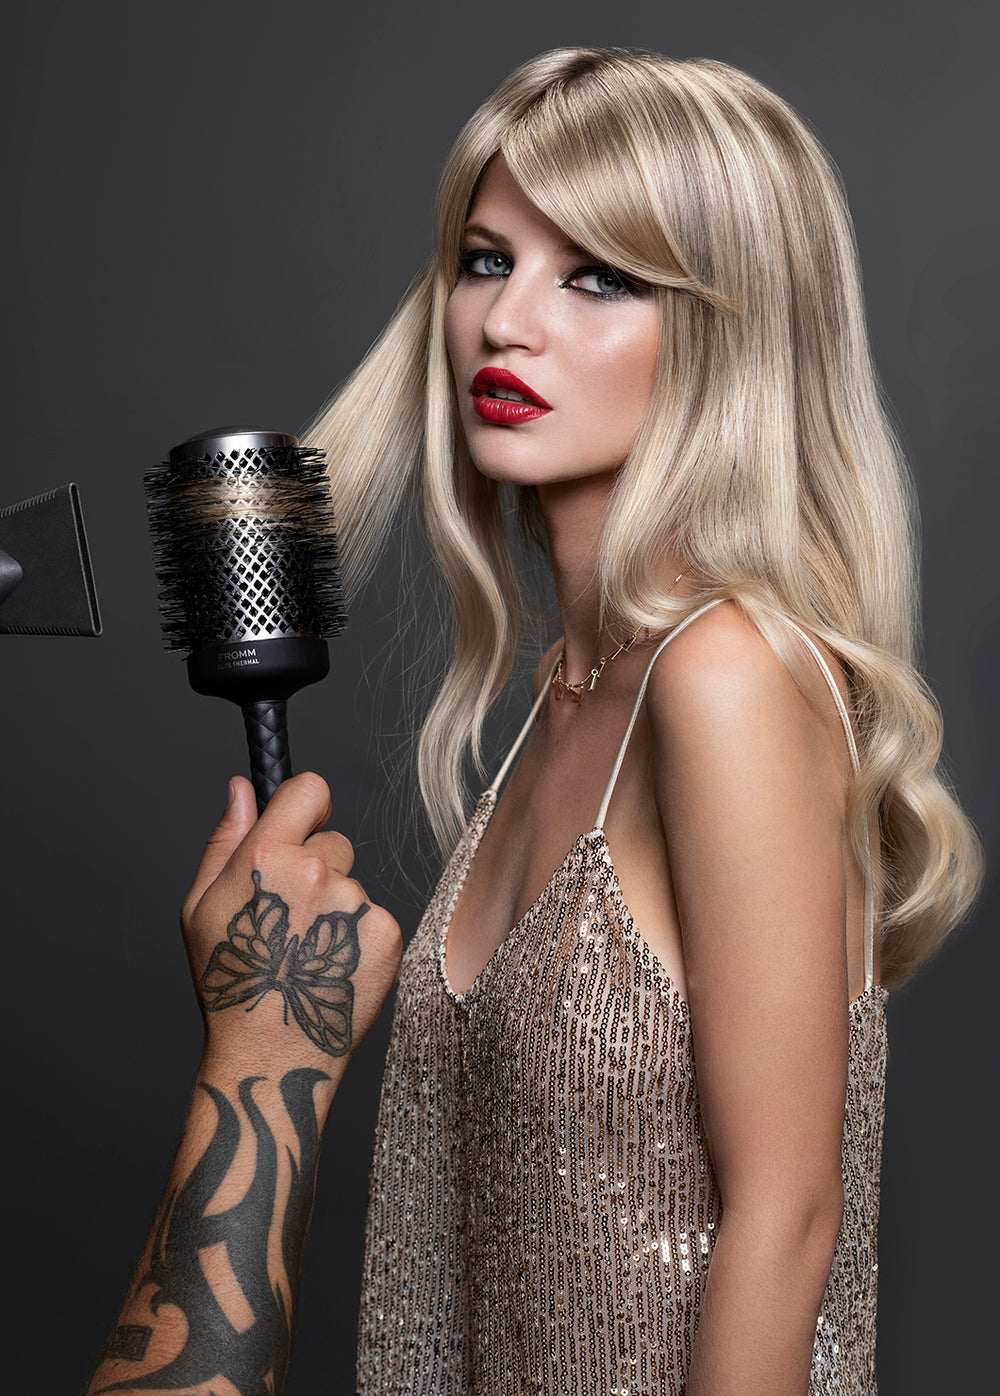 Fromm Pro Professional Salon Elite Thermal Black Ceramic Round Hair Brush used on blonde model with curls, red lipstick, and gold sequin top